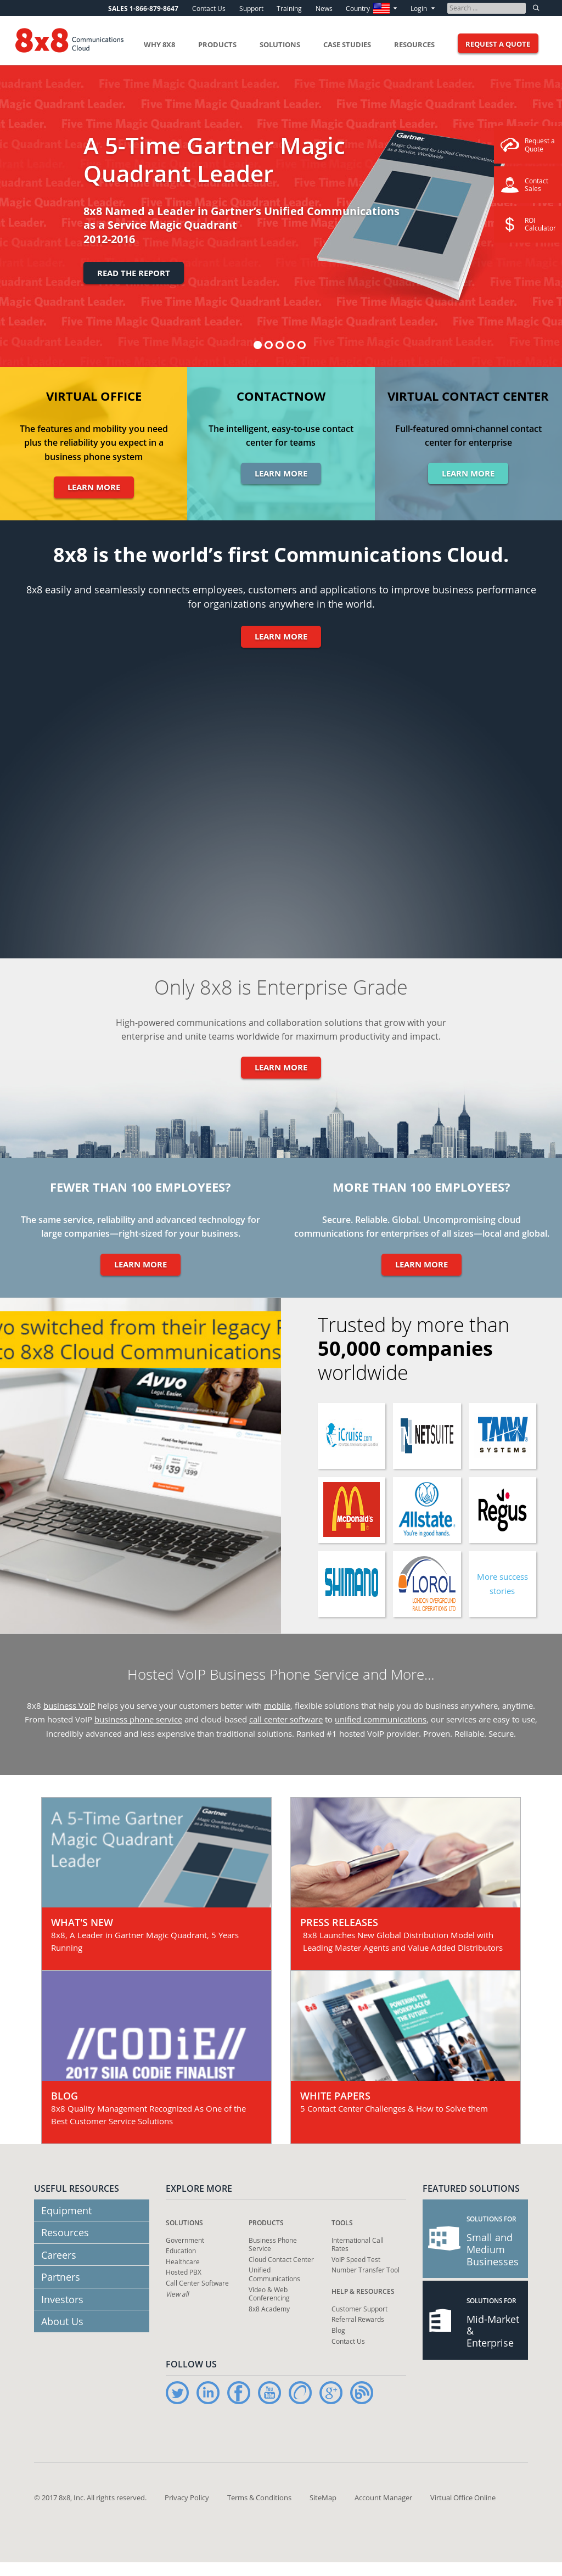 8x8 Competitors, Revenue and Employees - Owler Company Profile